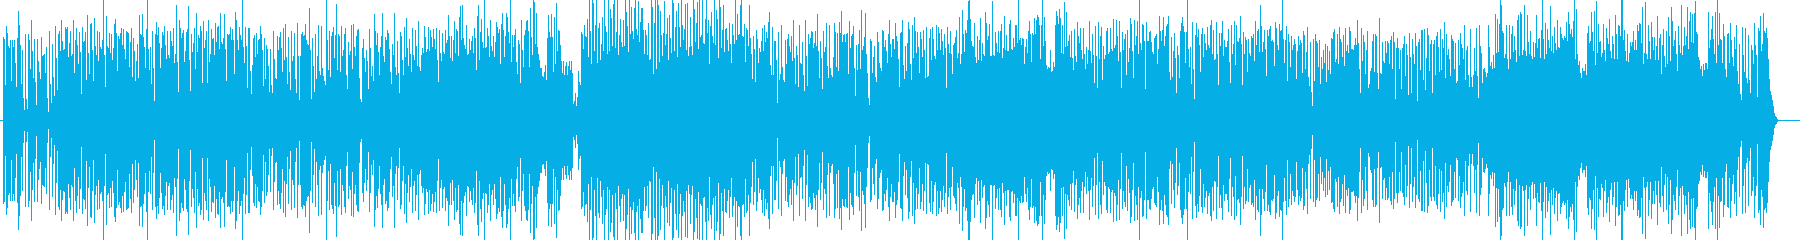 High-pitched pops that can be used in games's reproduced waveform